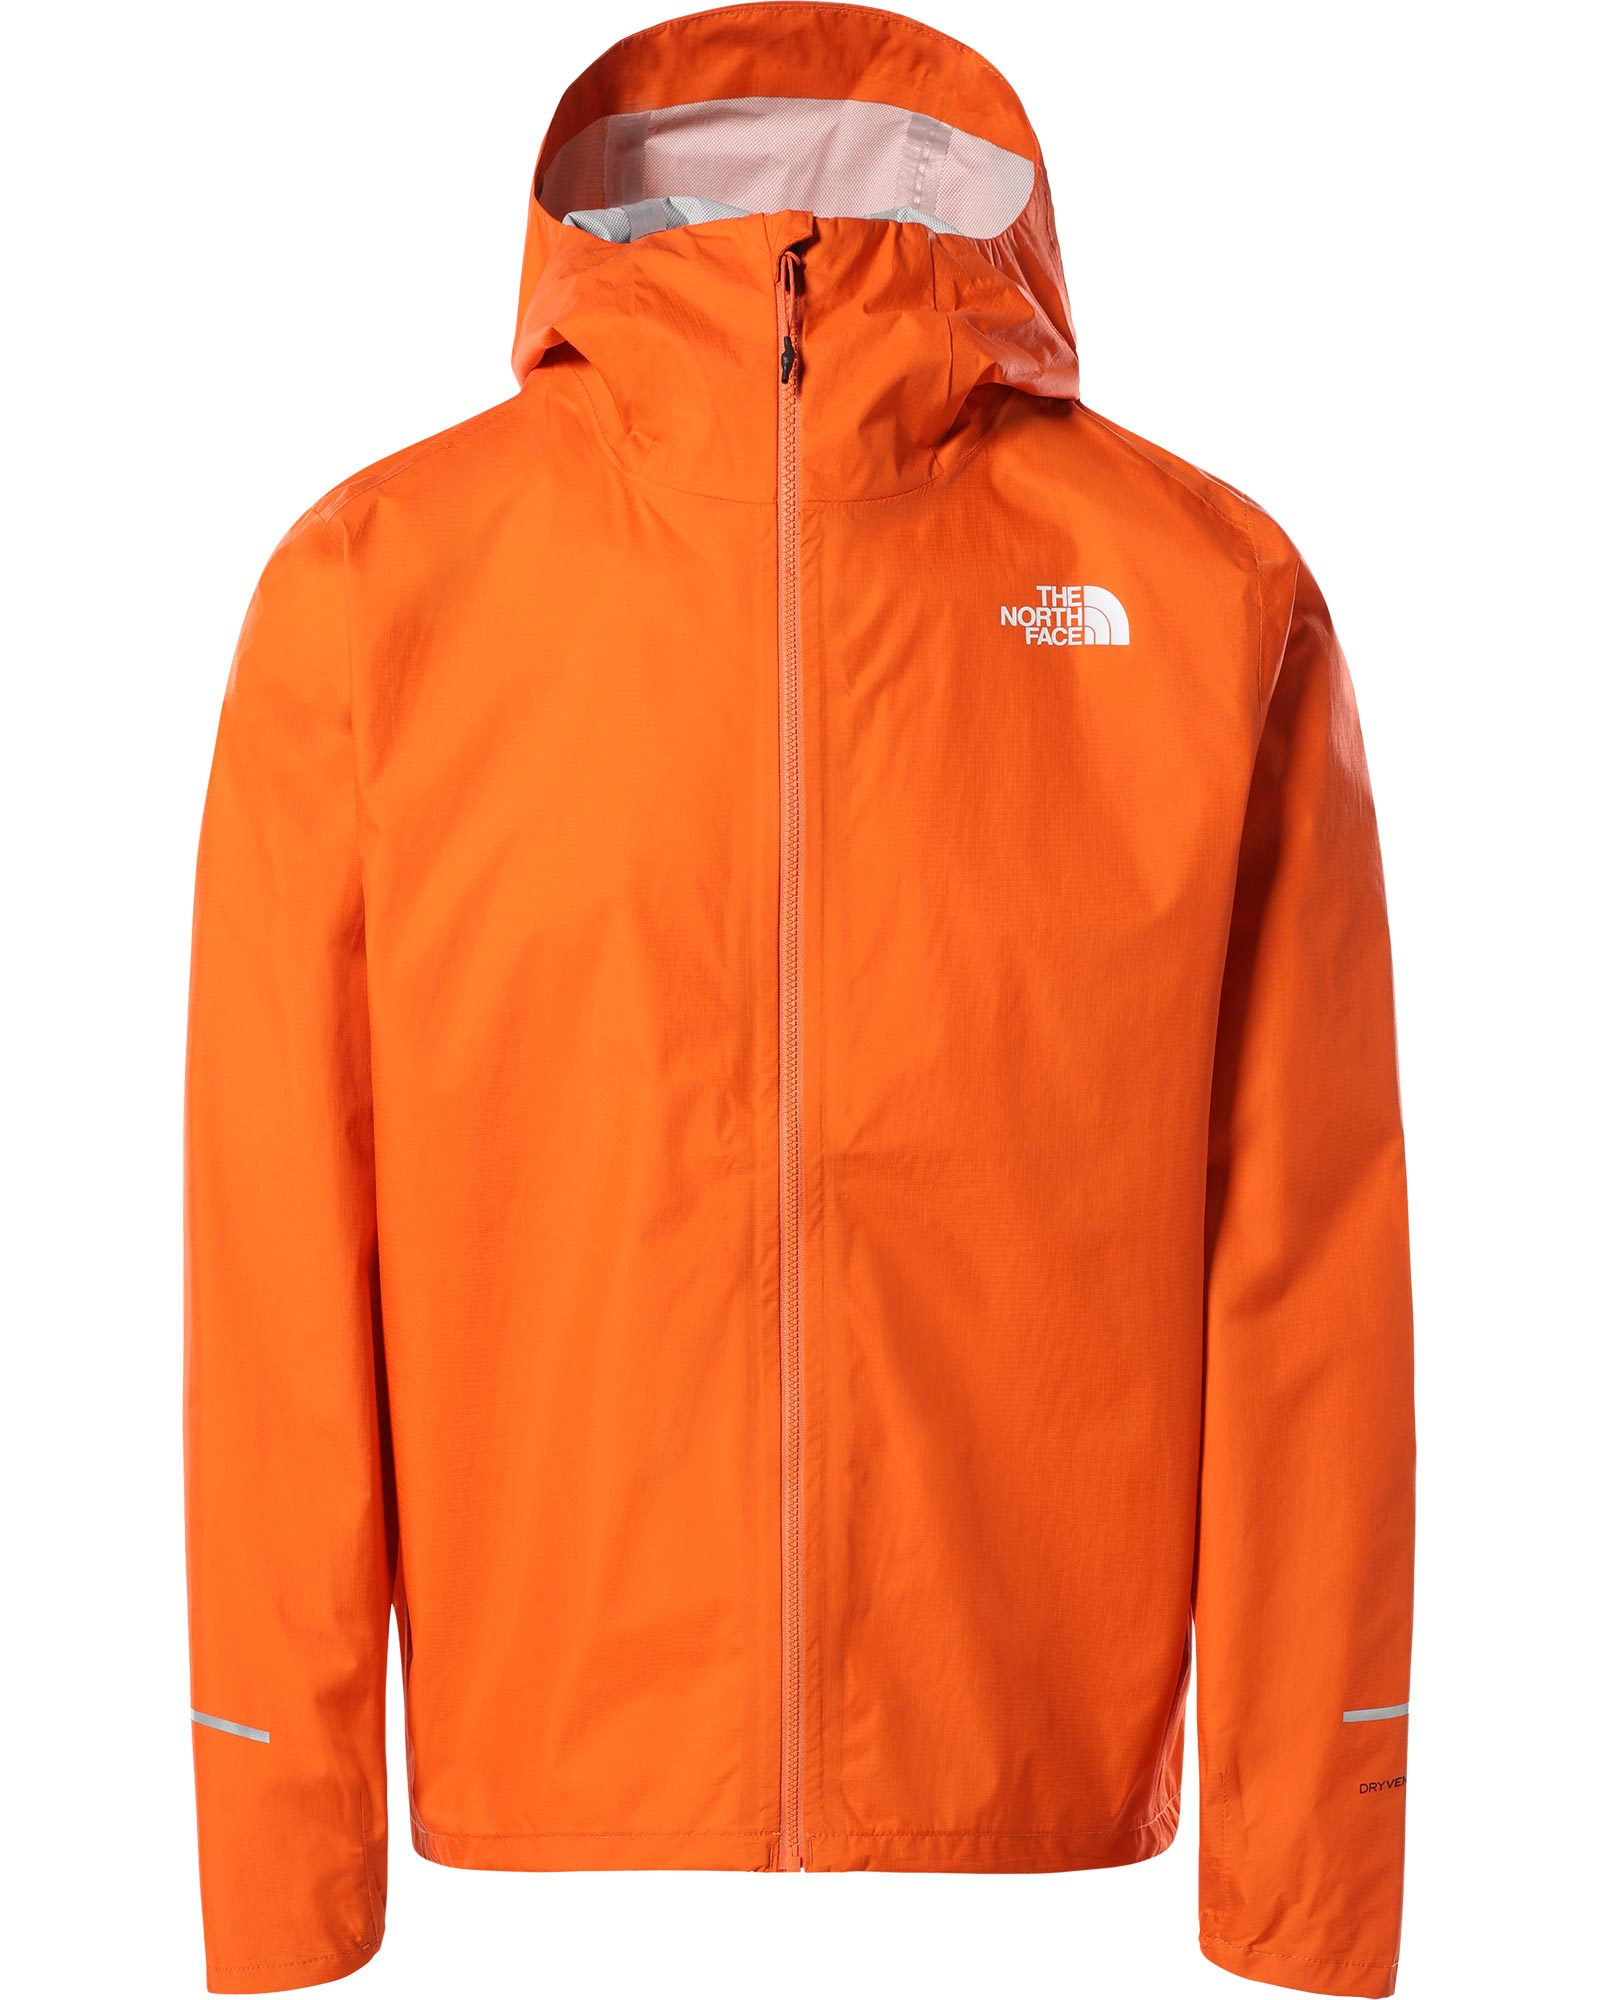 The North Face Mens First Dawn Packable Jacket